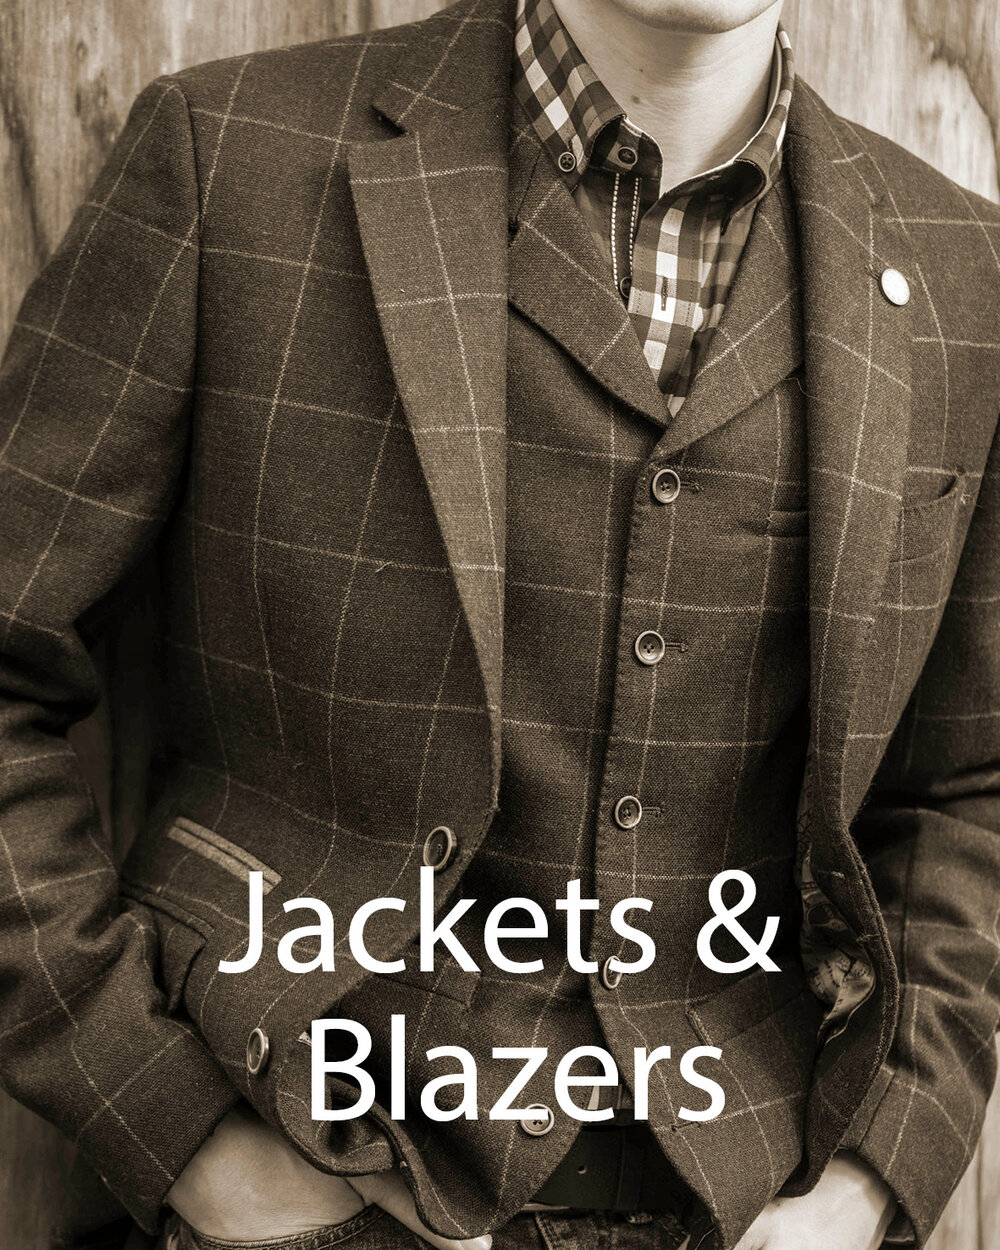 Image gateway to Jackets, Blazers and waistcoats page on Symonds of Hereford website